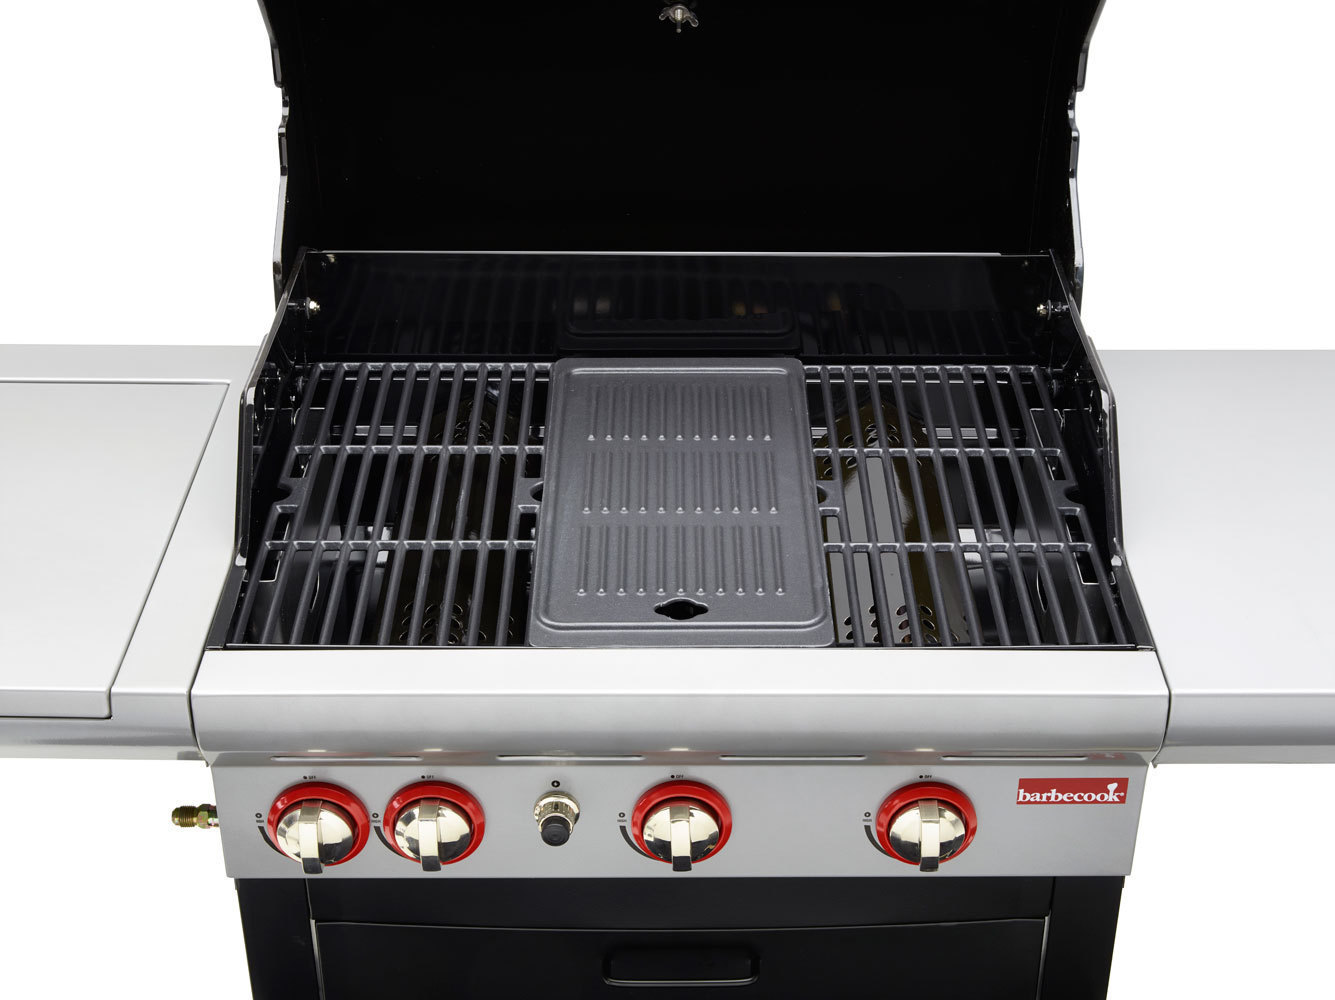 reversible cast iron griddle barbecook the barbecue. Black Bedroom Furniture Sets. Home Design Ideas